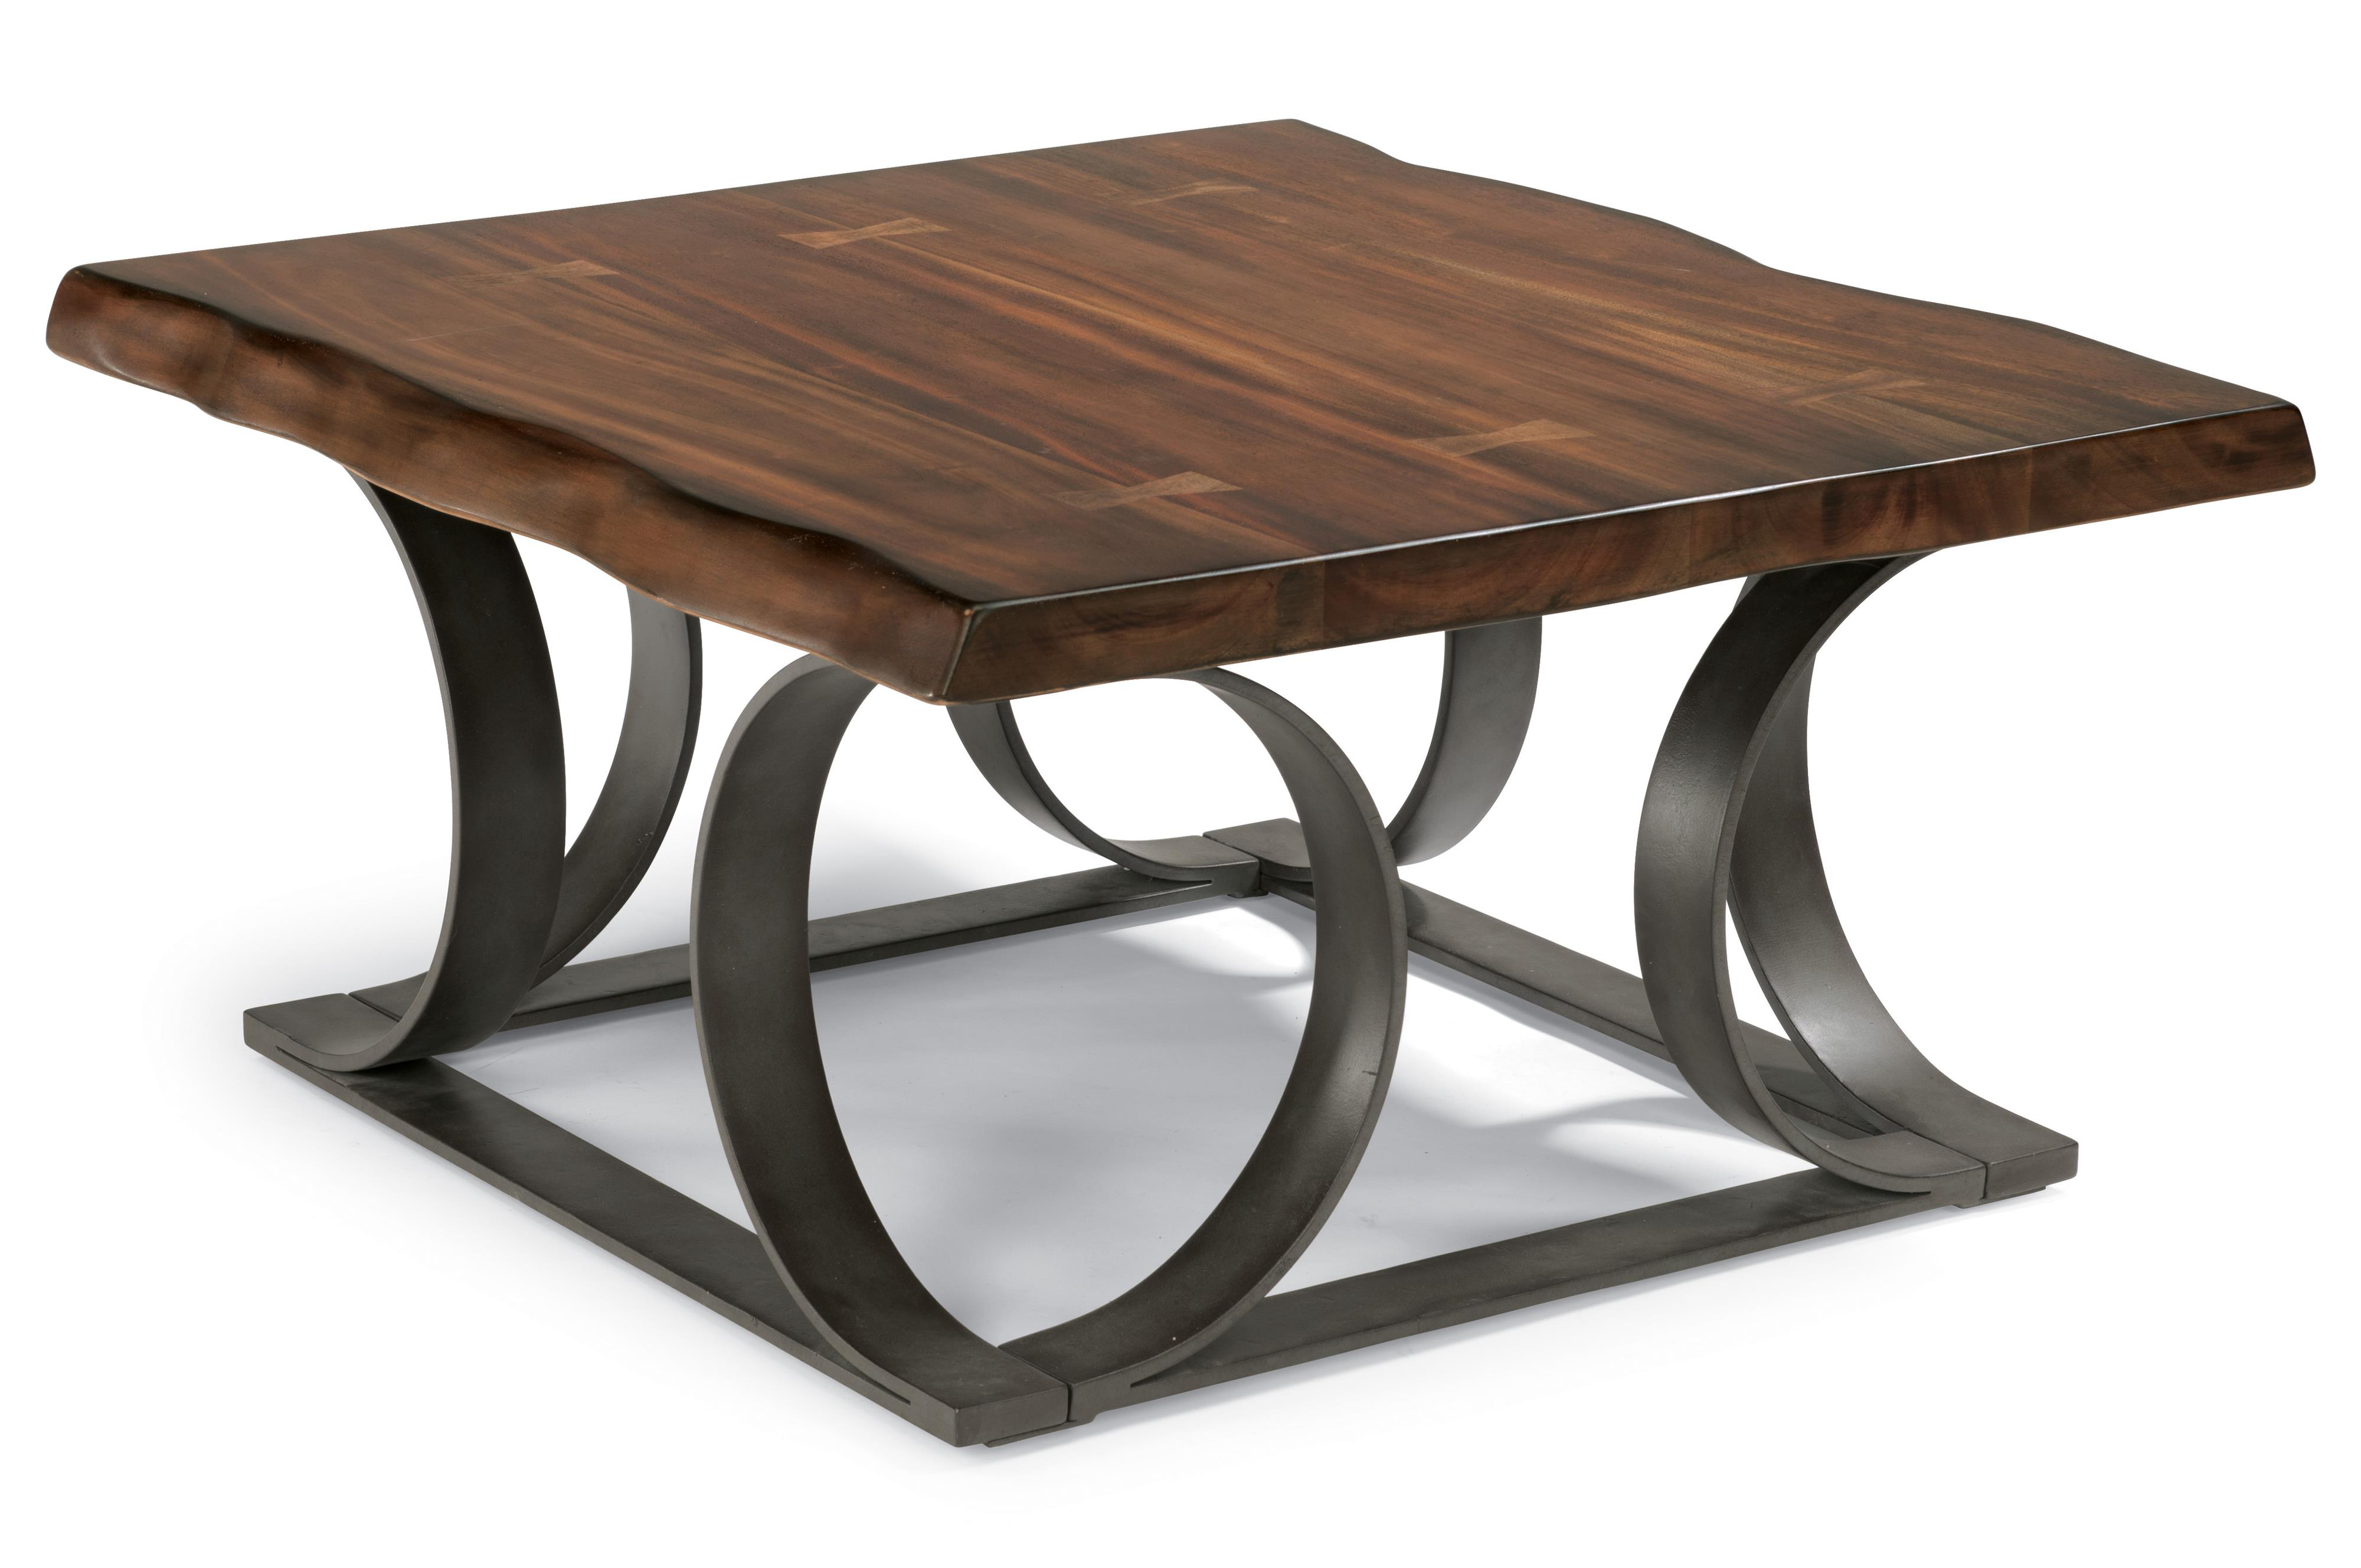 Rustic log cut square cocktail table with dark metal base